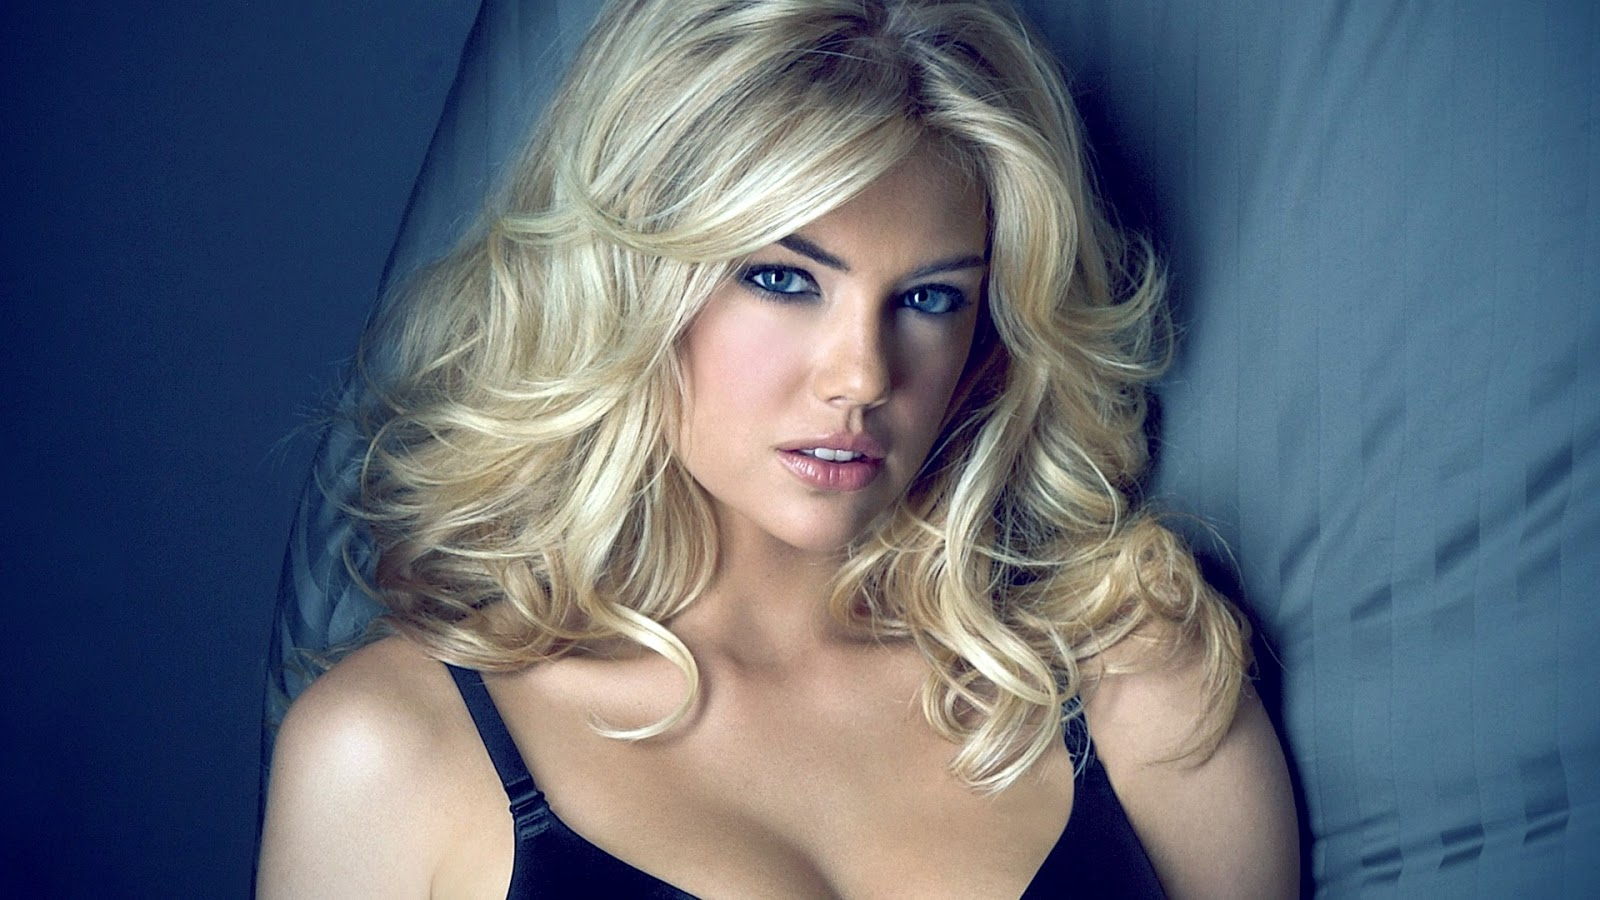 Kate Upton Pictures and Photos Gallery